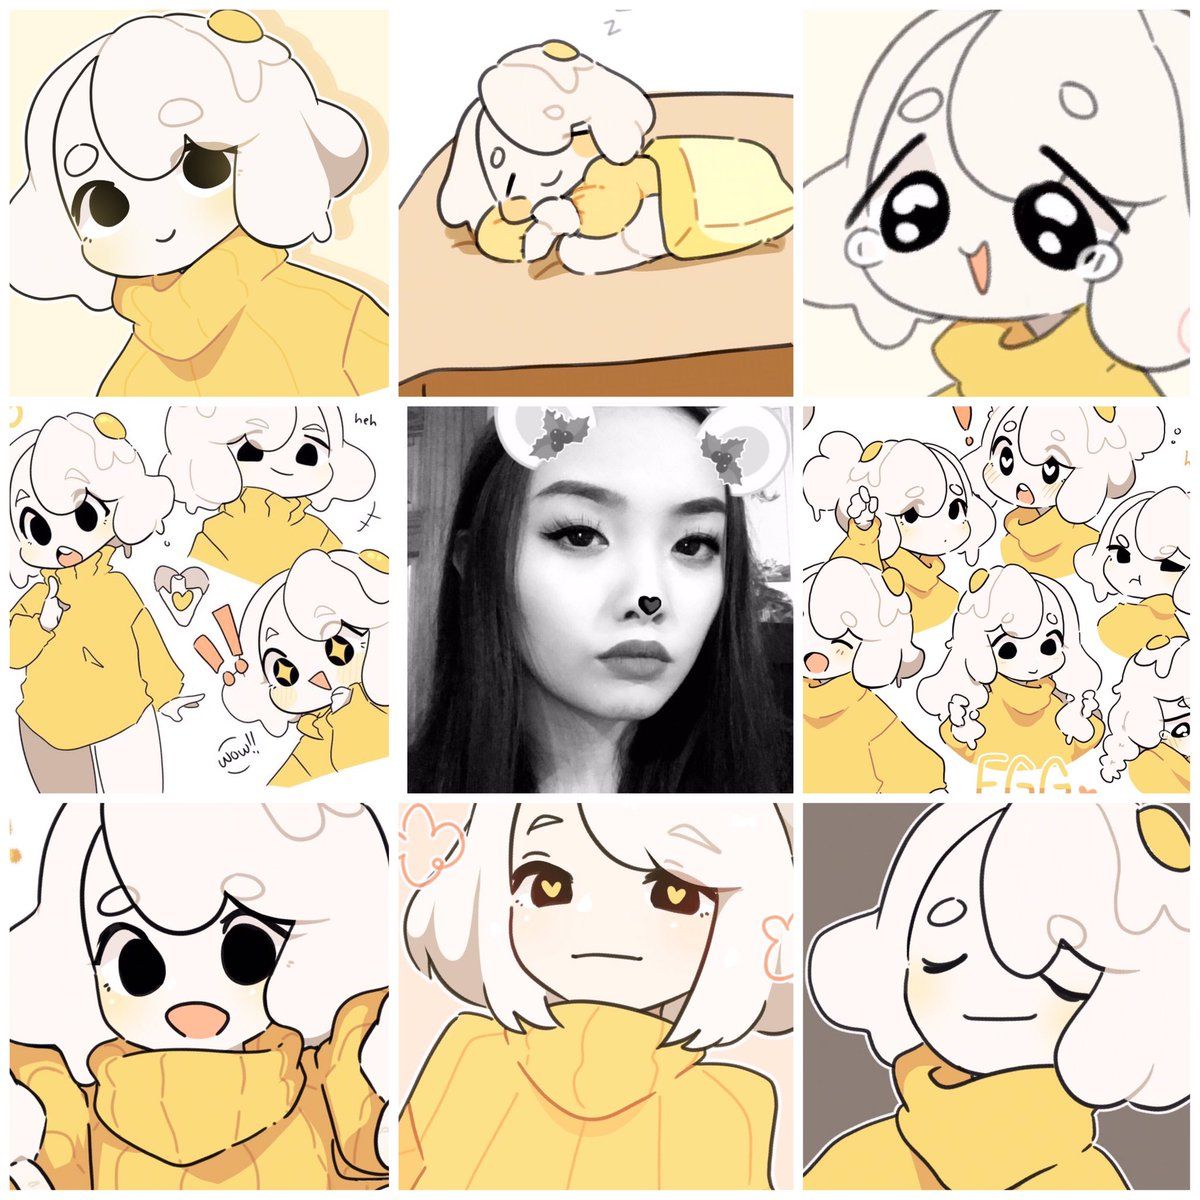 Lem 亞's photo on #artvsartist